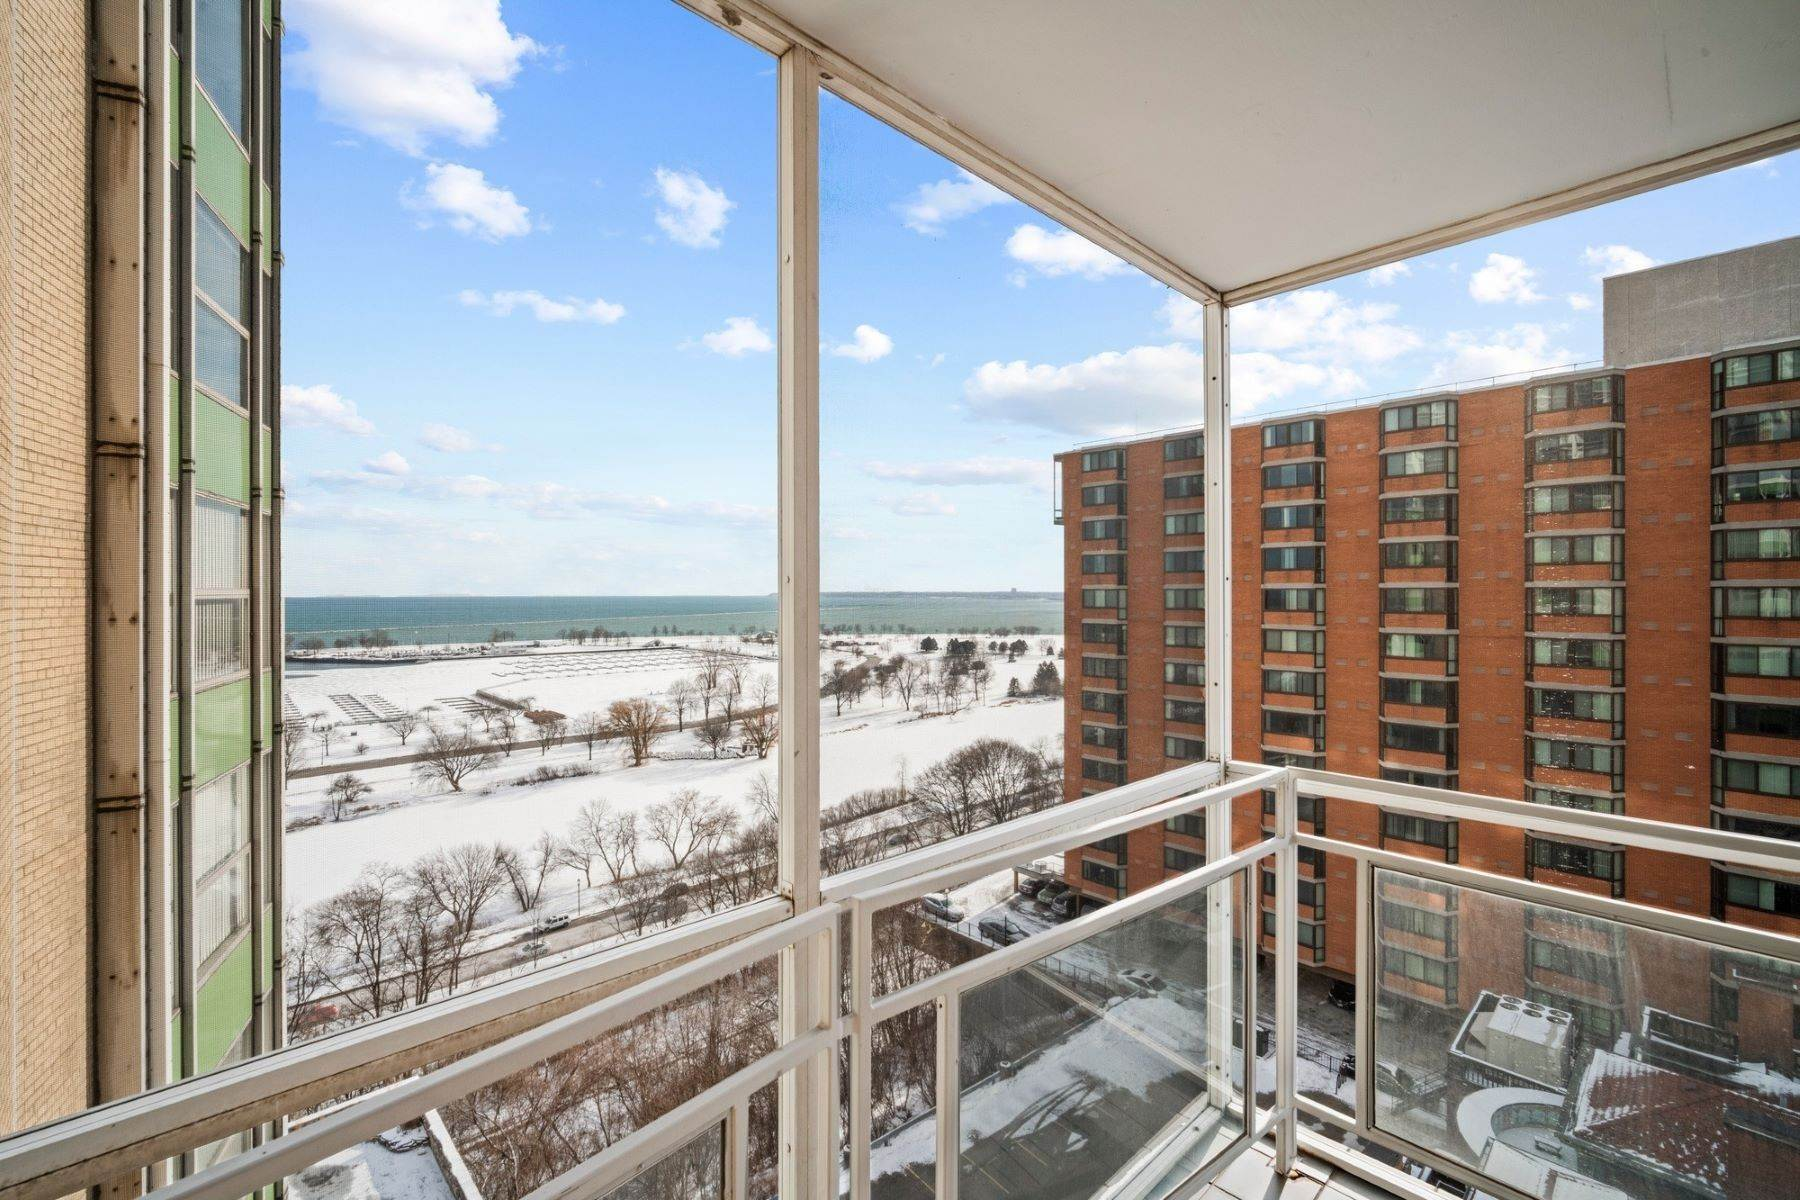 6. Condominiums at 1610 N. Prospect Ave., Unit 1101 Milwaukee, Wisconsin 53202 United States